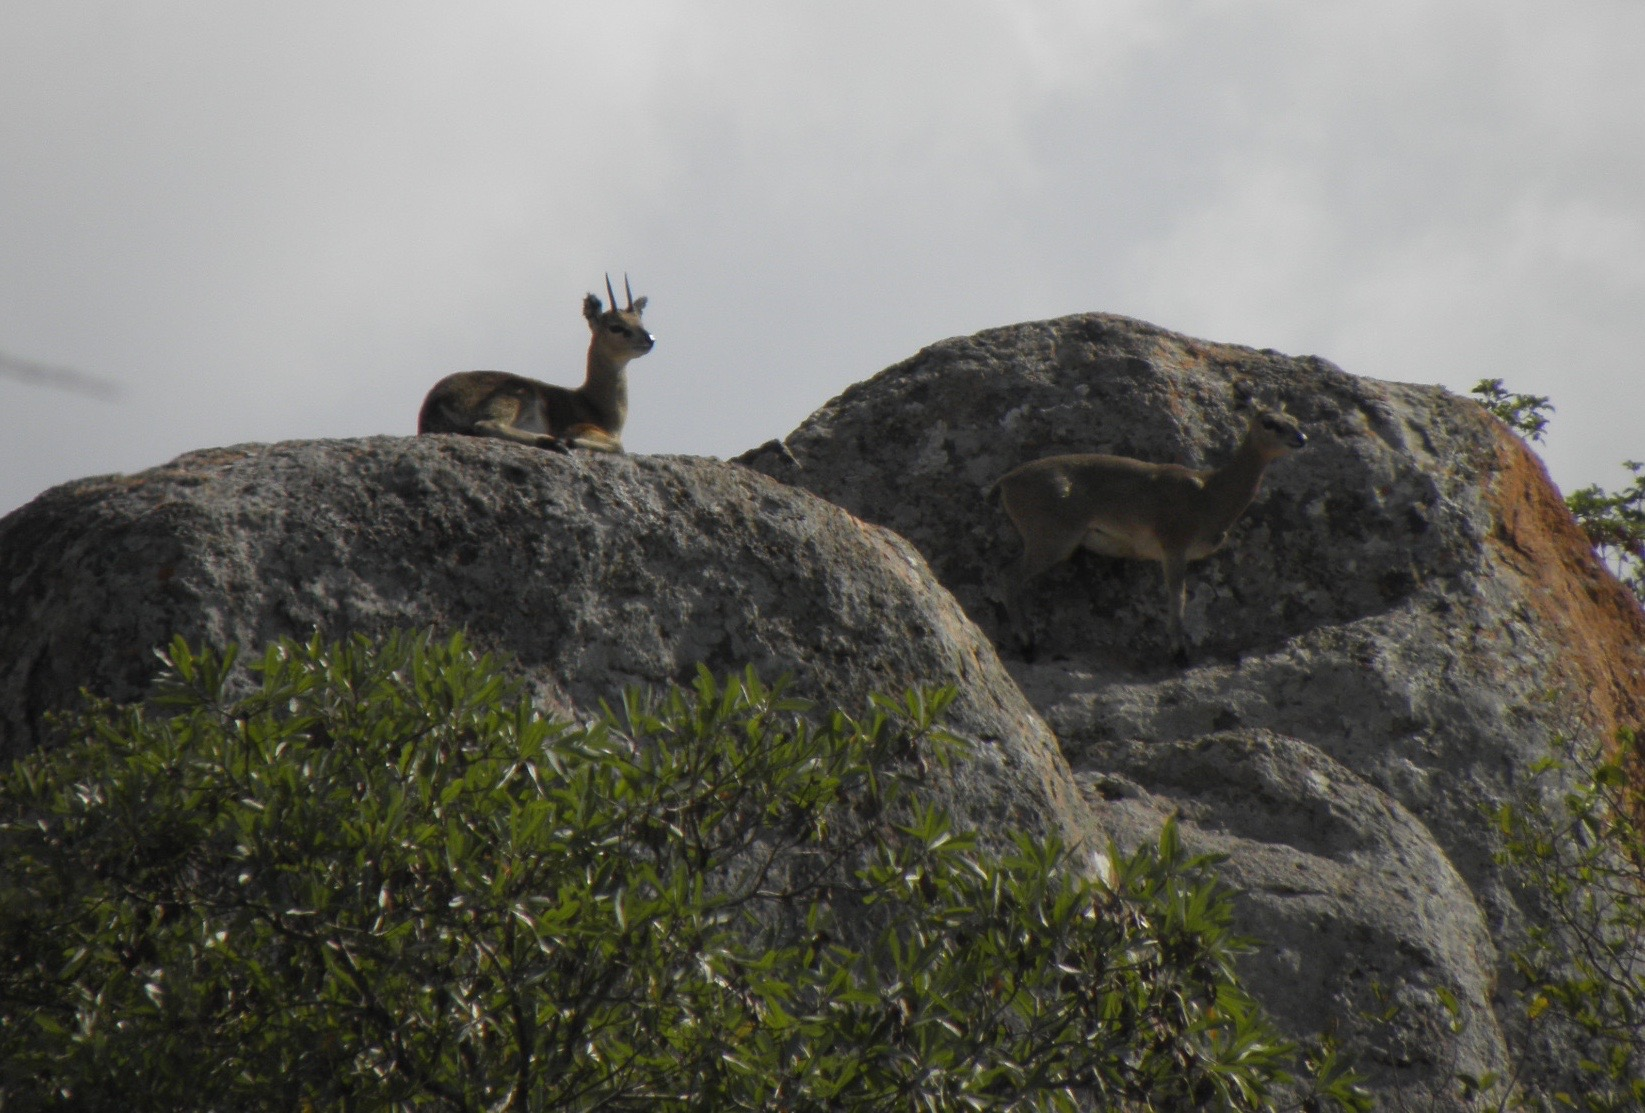 This is an animal I'd missed out on on both previous visits.  The little Klipspringer, a tiny antelope that lives in much the same habitat as our rock wallabies and apparently just as good at dashing up steep cliffs